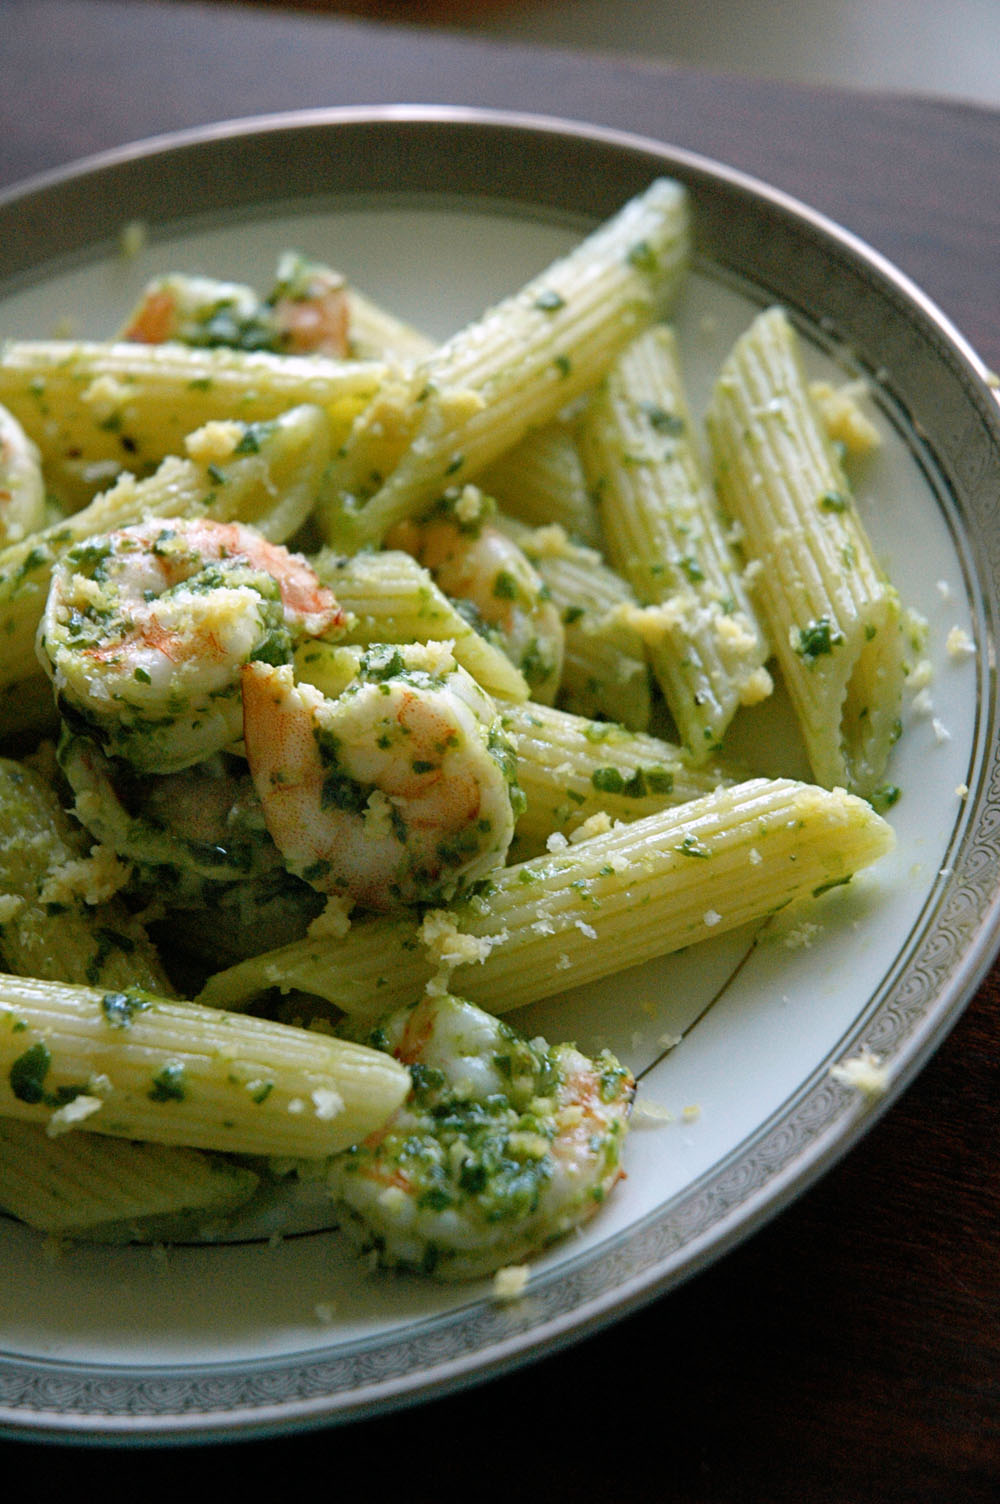 sprinkle with additional lemon zest and parmesan cheese and serve